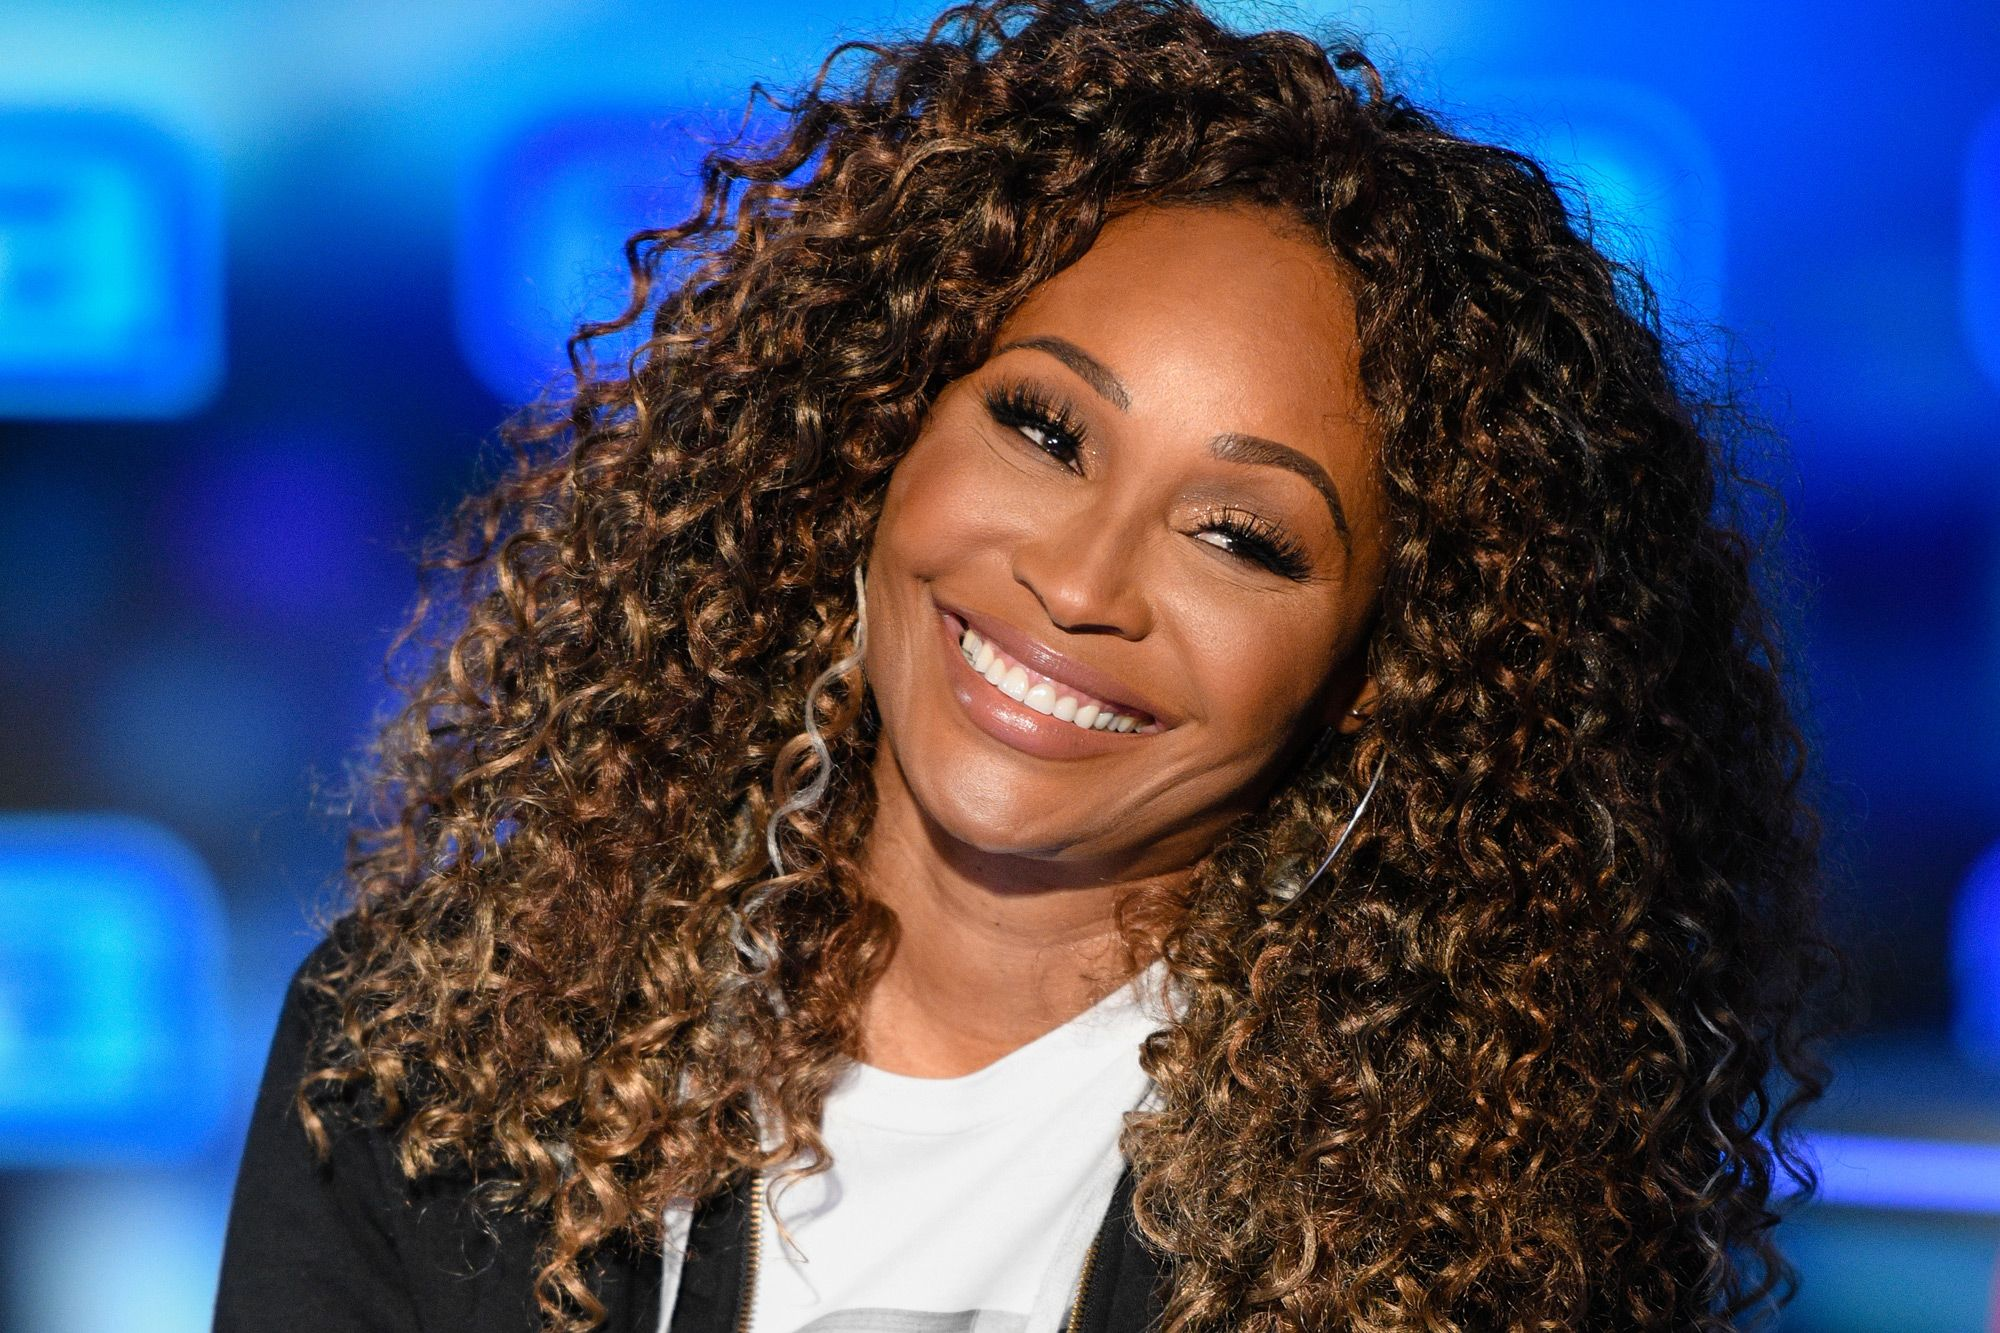 Cynthia Bailey Tells People To Vote - Check Out Her Gorgeous Natural Look In The Photos She Dropped